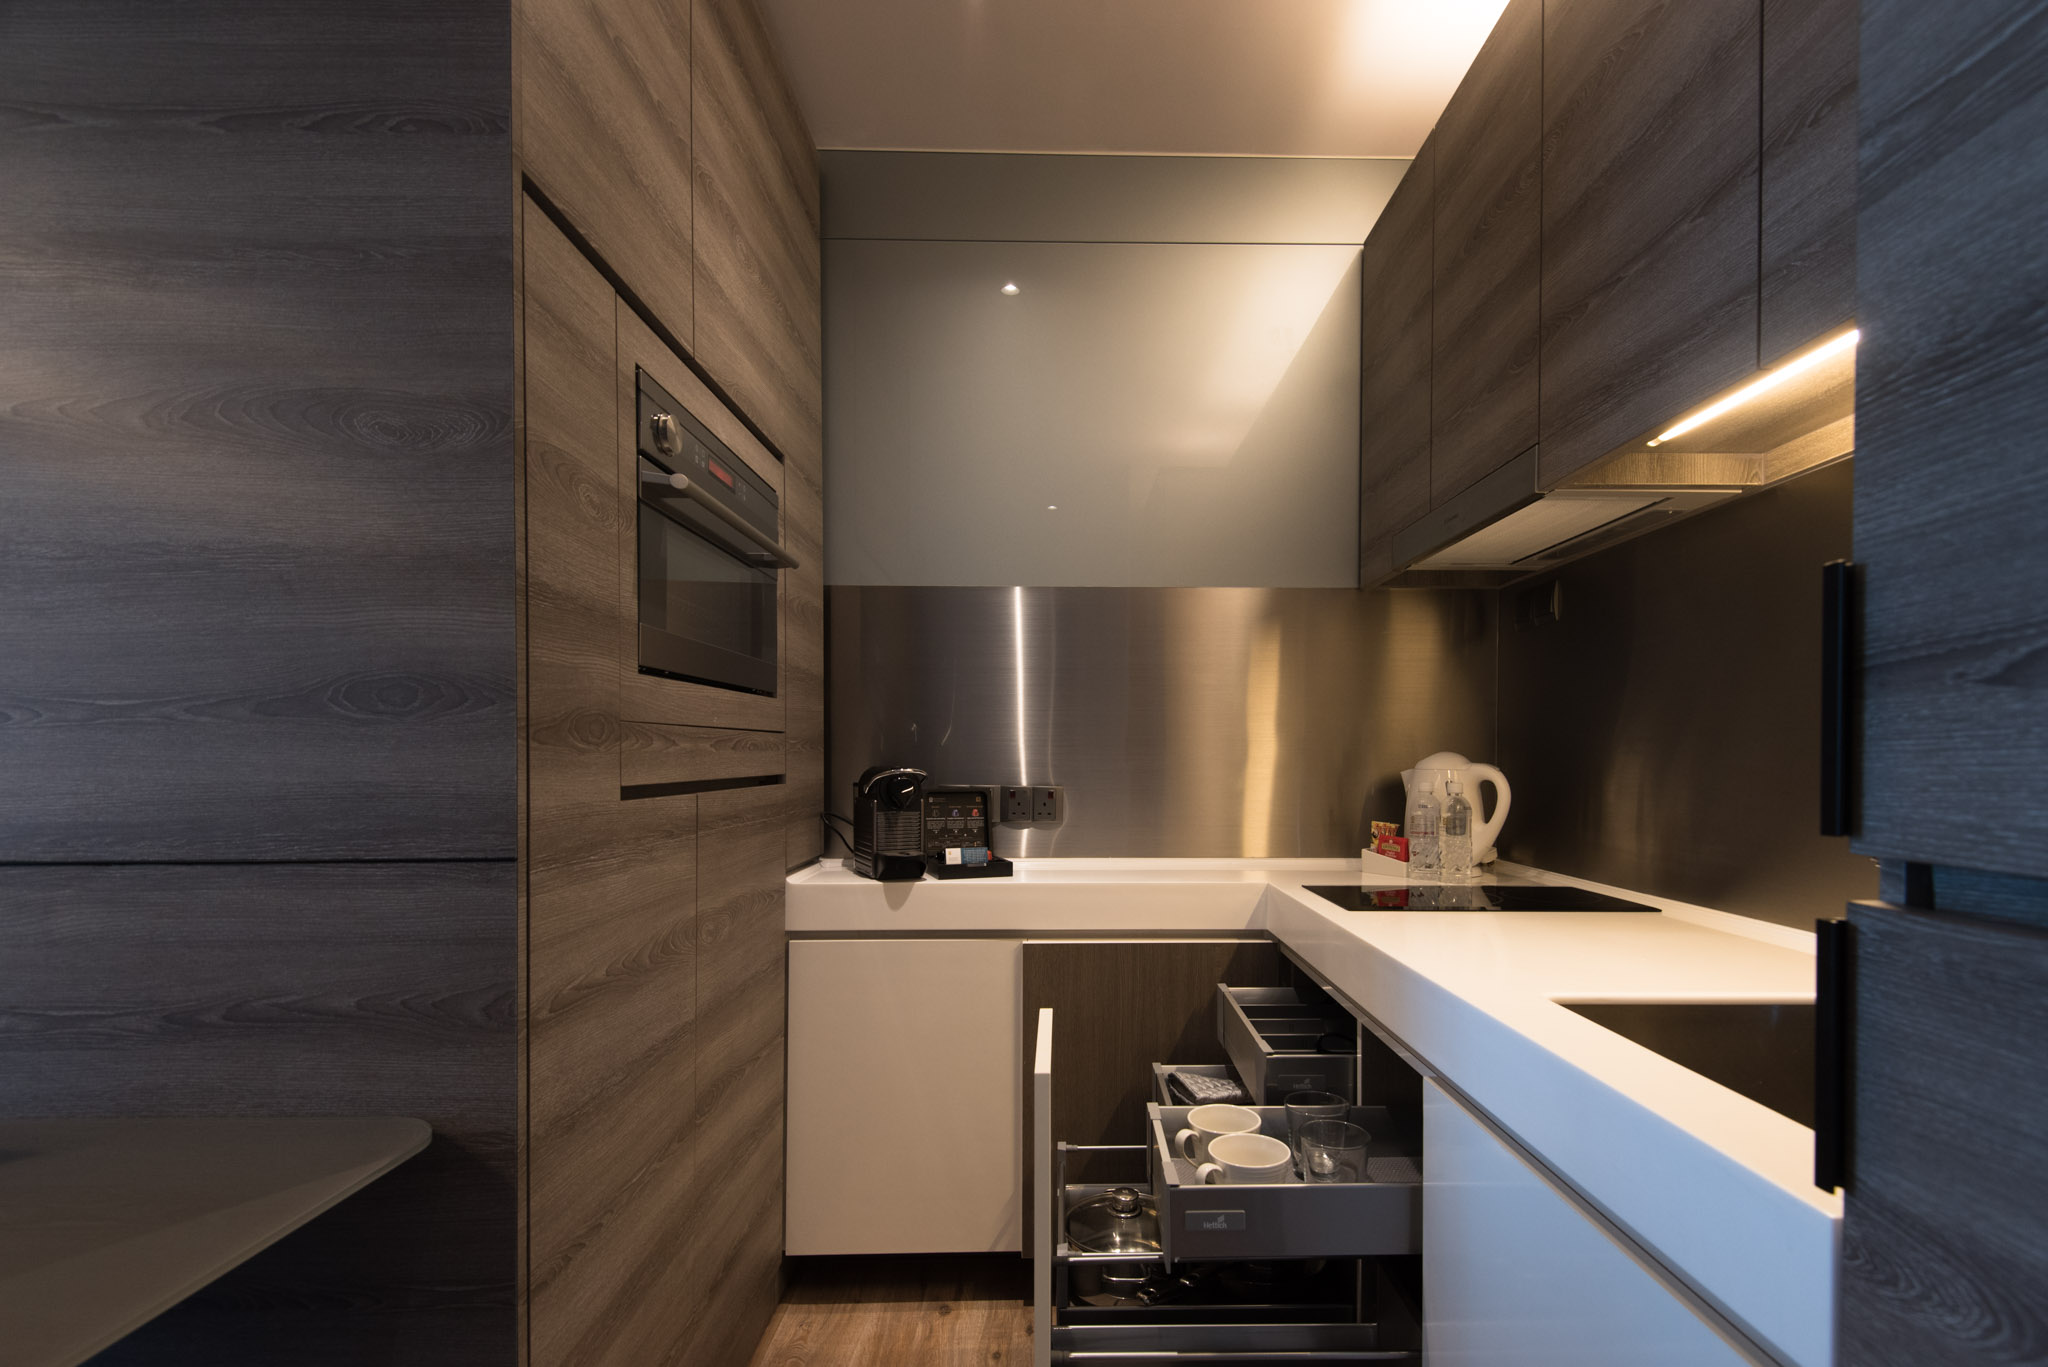 One Bedroom Premium Suite (Kitchen) of the Pan Pacific Serviced Suites Beach Road